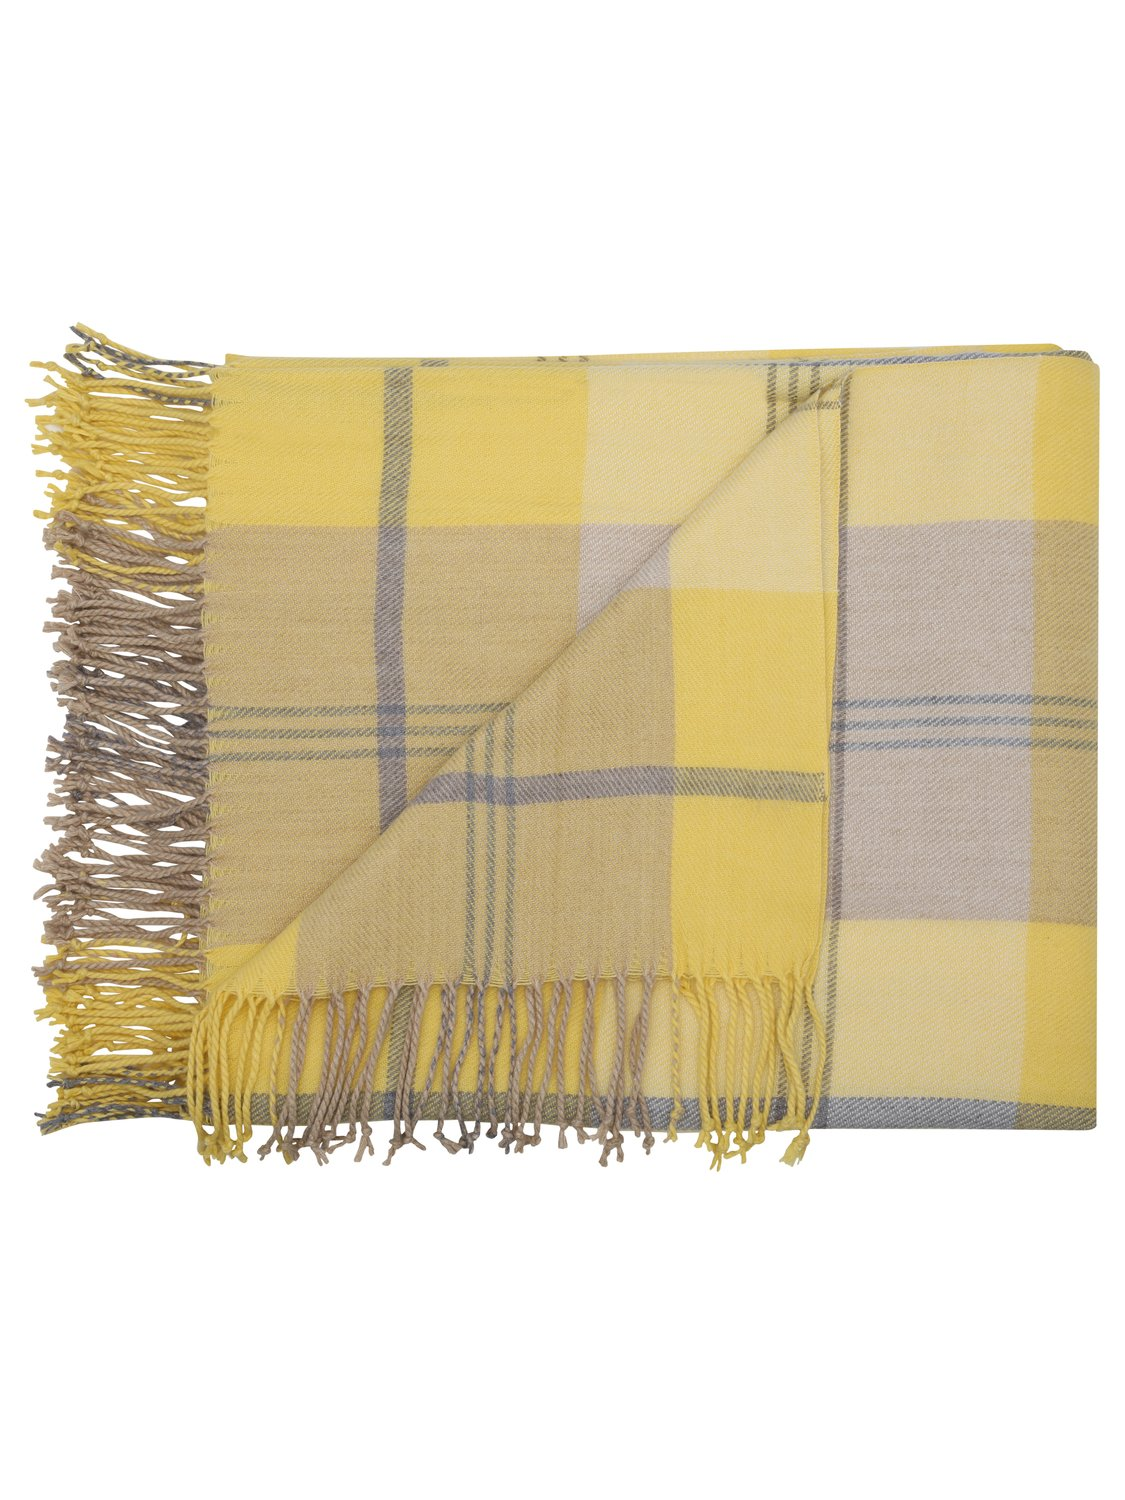 Home ochre yellow check woven throw blanket with tassels - Ochre